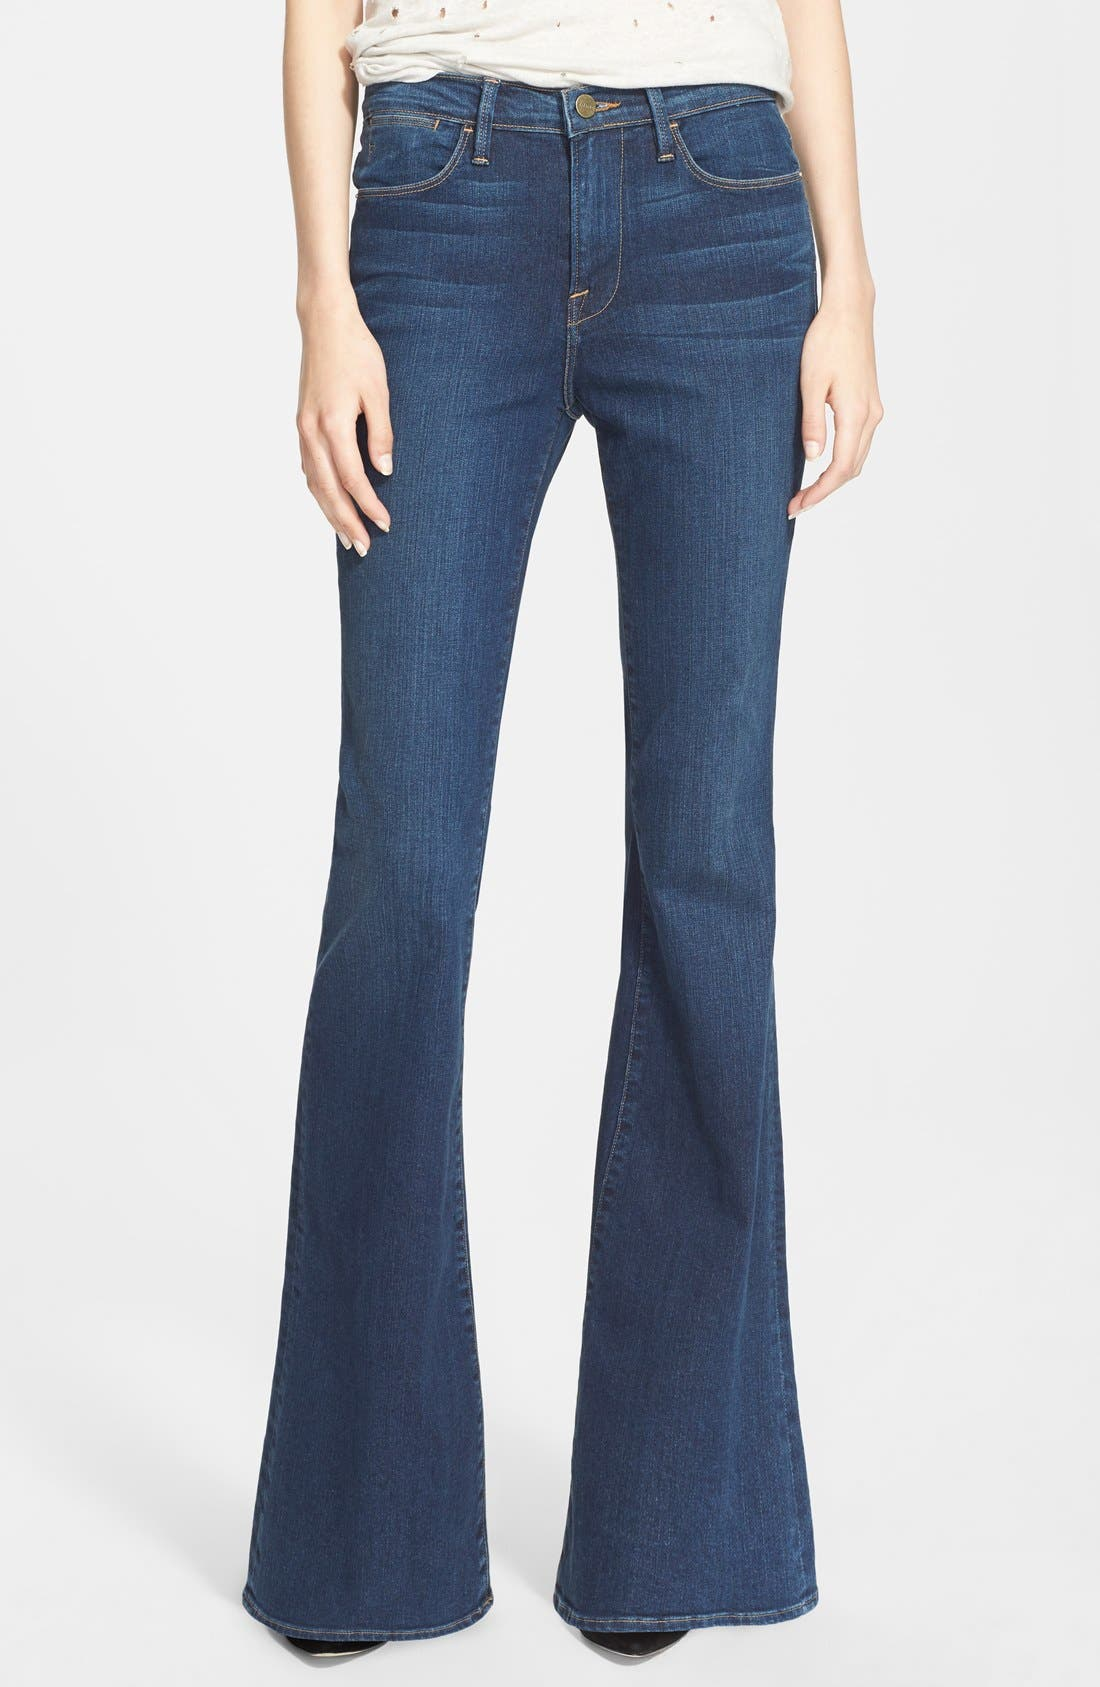 Denim 'Le High Flare' Flare Leg Jeans,                         Main,                         color, Dunfield